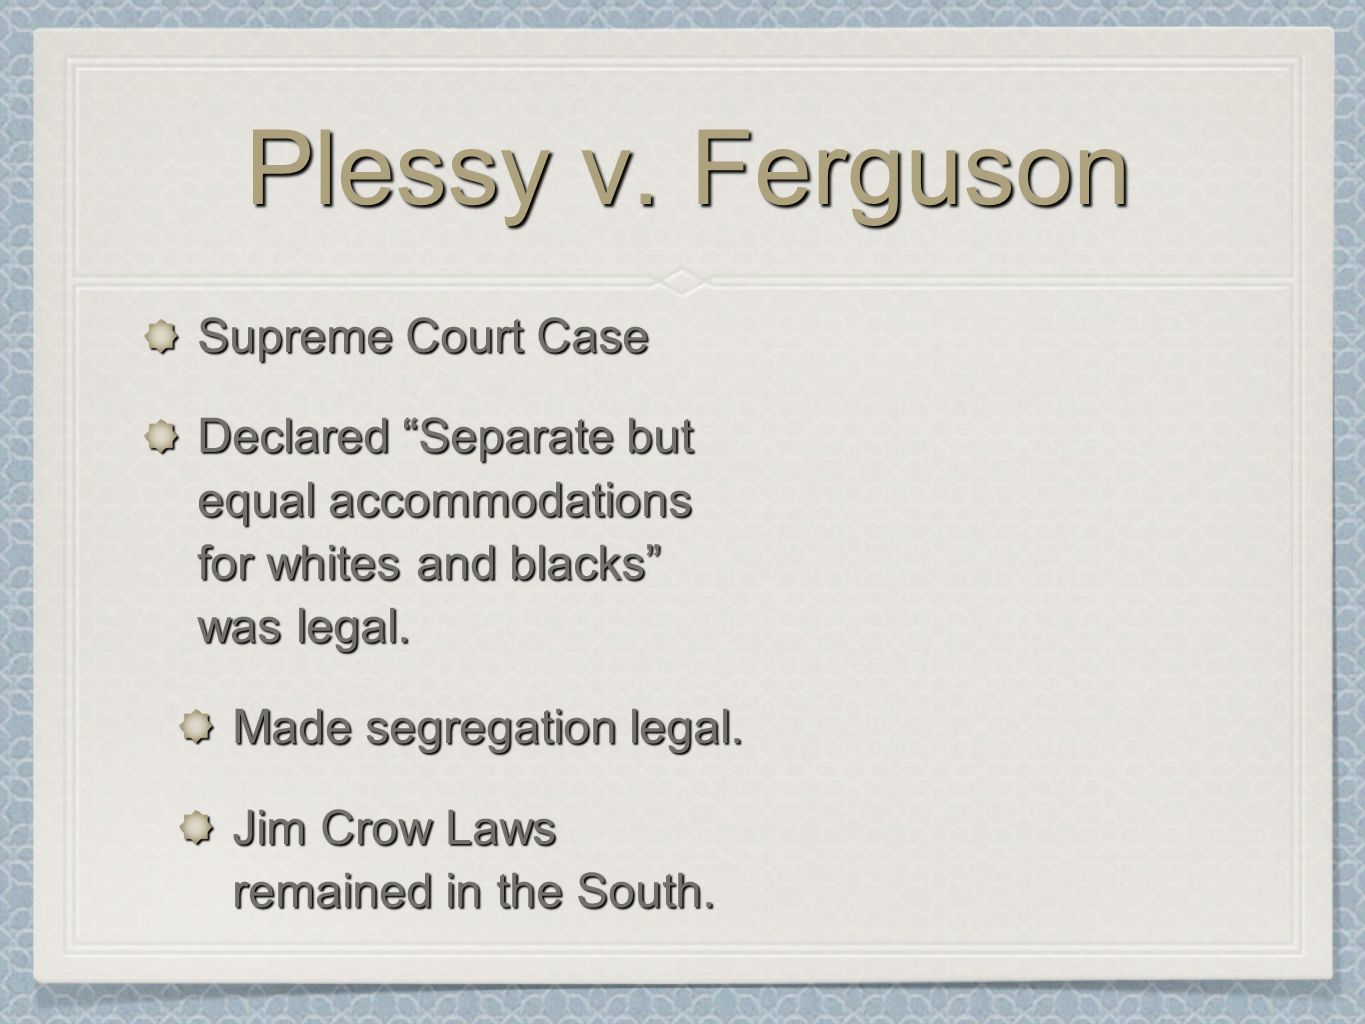 an analysis of the plessy v ferguson supreme court case Plessy v ferguson august 13, 2013 | ryan 3 minutes facts plaintiff, is a 'black'   in which, p was asking for a higher court, to strike down upon the ruling of a  lower court   even though, supreme court states that these laws are not un- equal,.